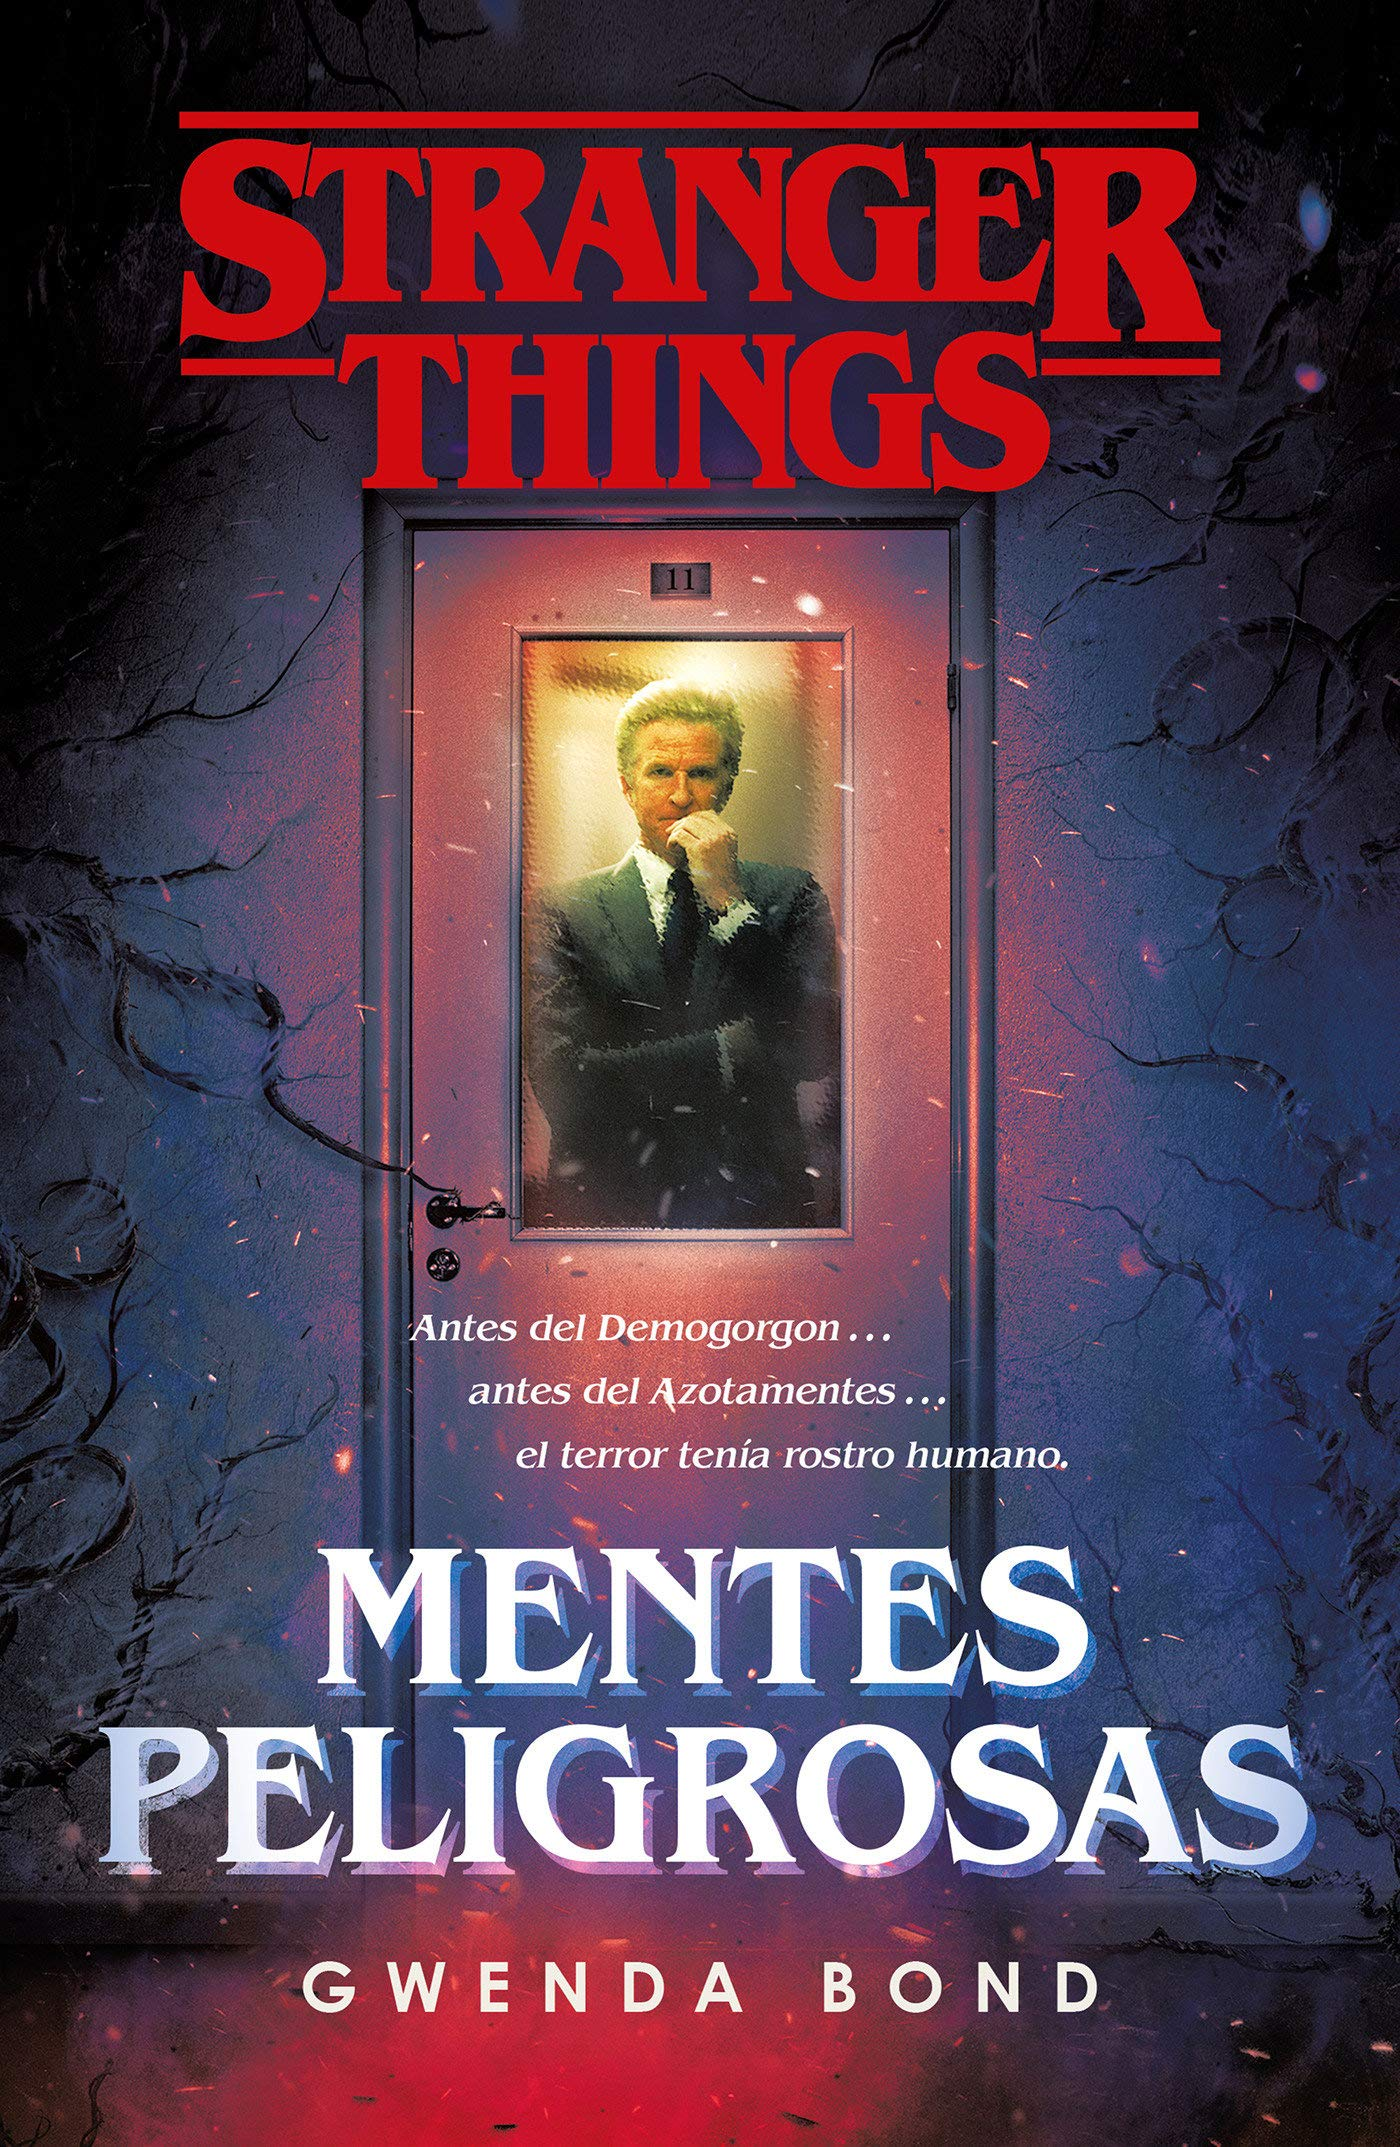 Stranger Things Mentes Peligrosas Stranger Things Suspicious Minds The First Official Stranger Things Novel Fantascy Spanish Edition 9788401022975 Bond Gwenda Books